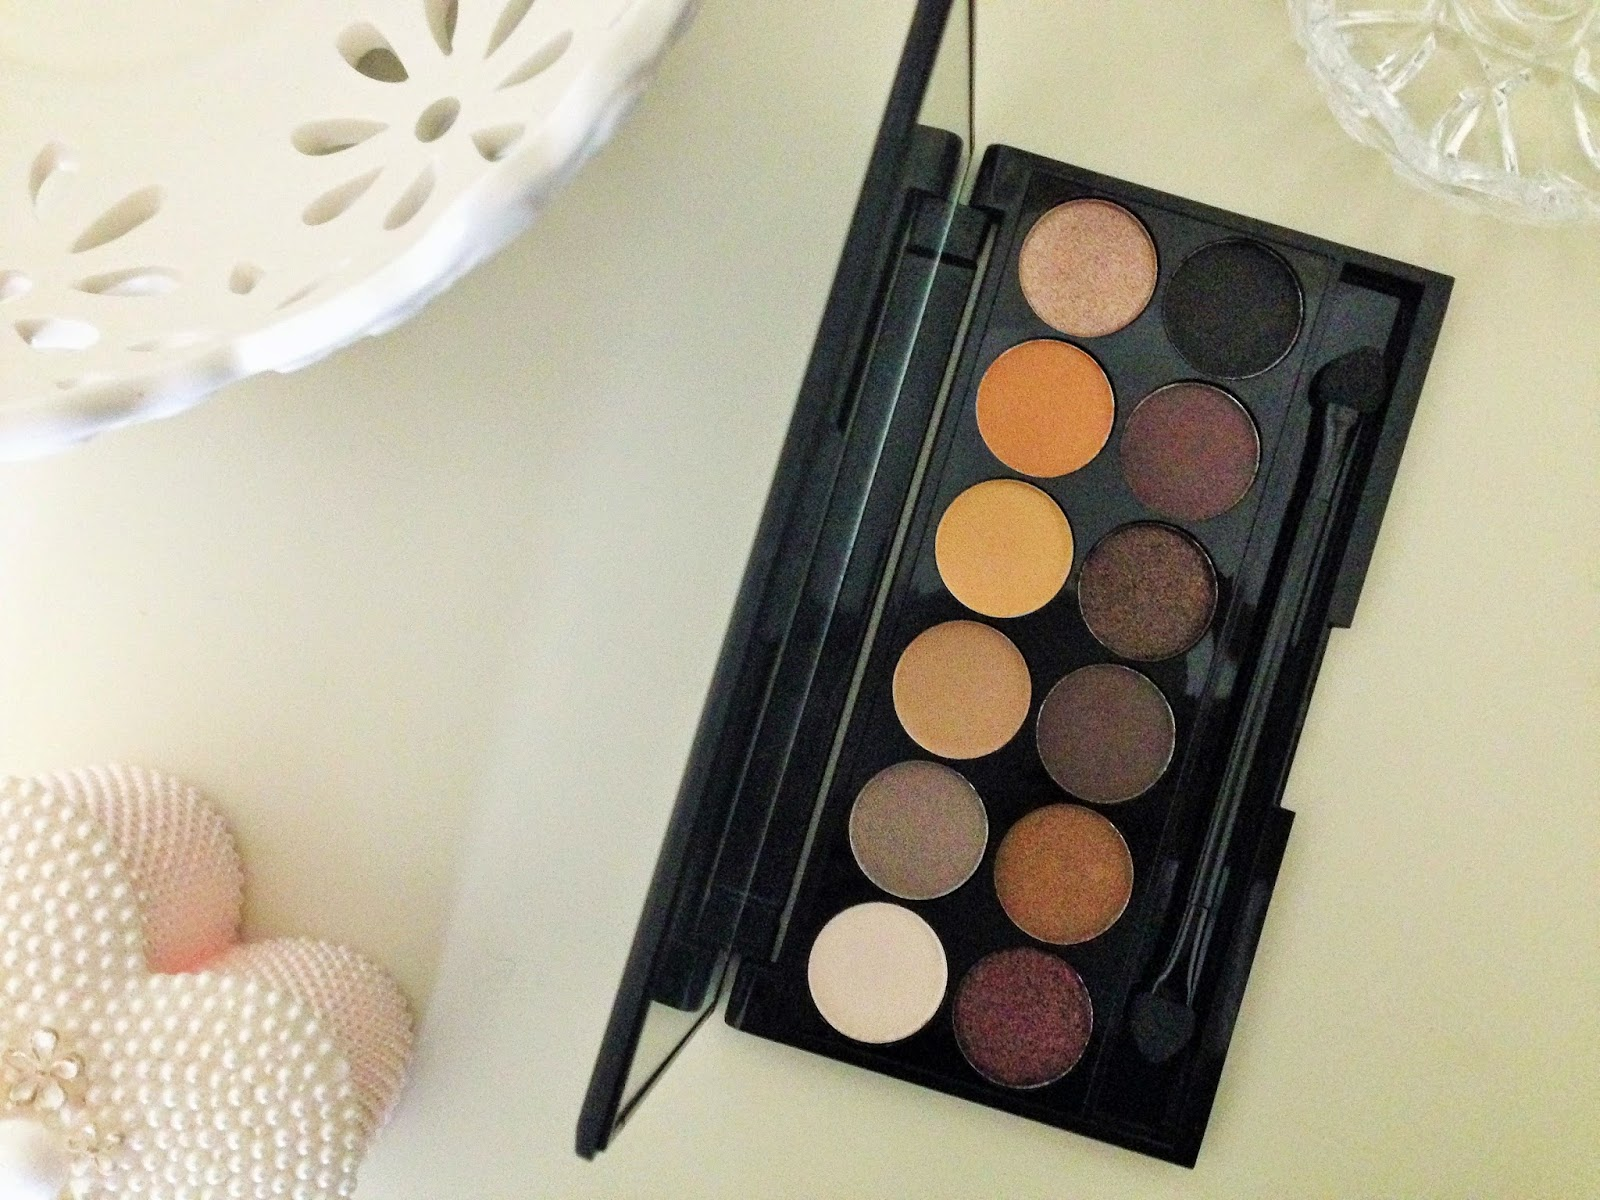 Sleek i-Divine Eyeshadow Palette in Au Naturel